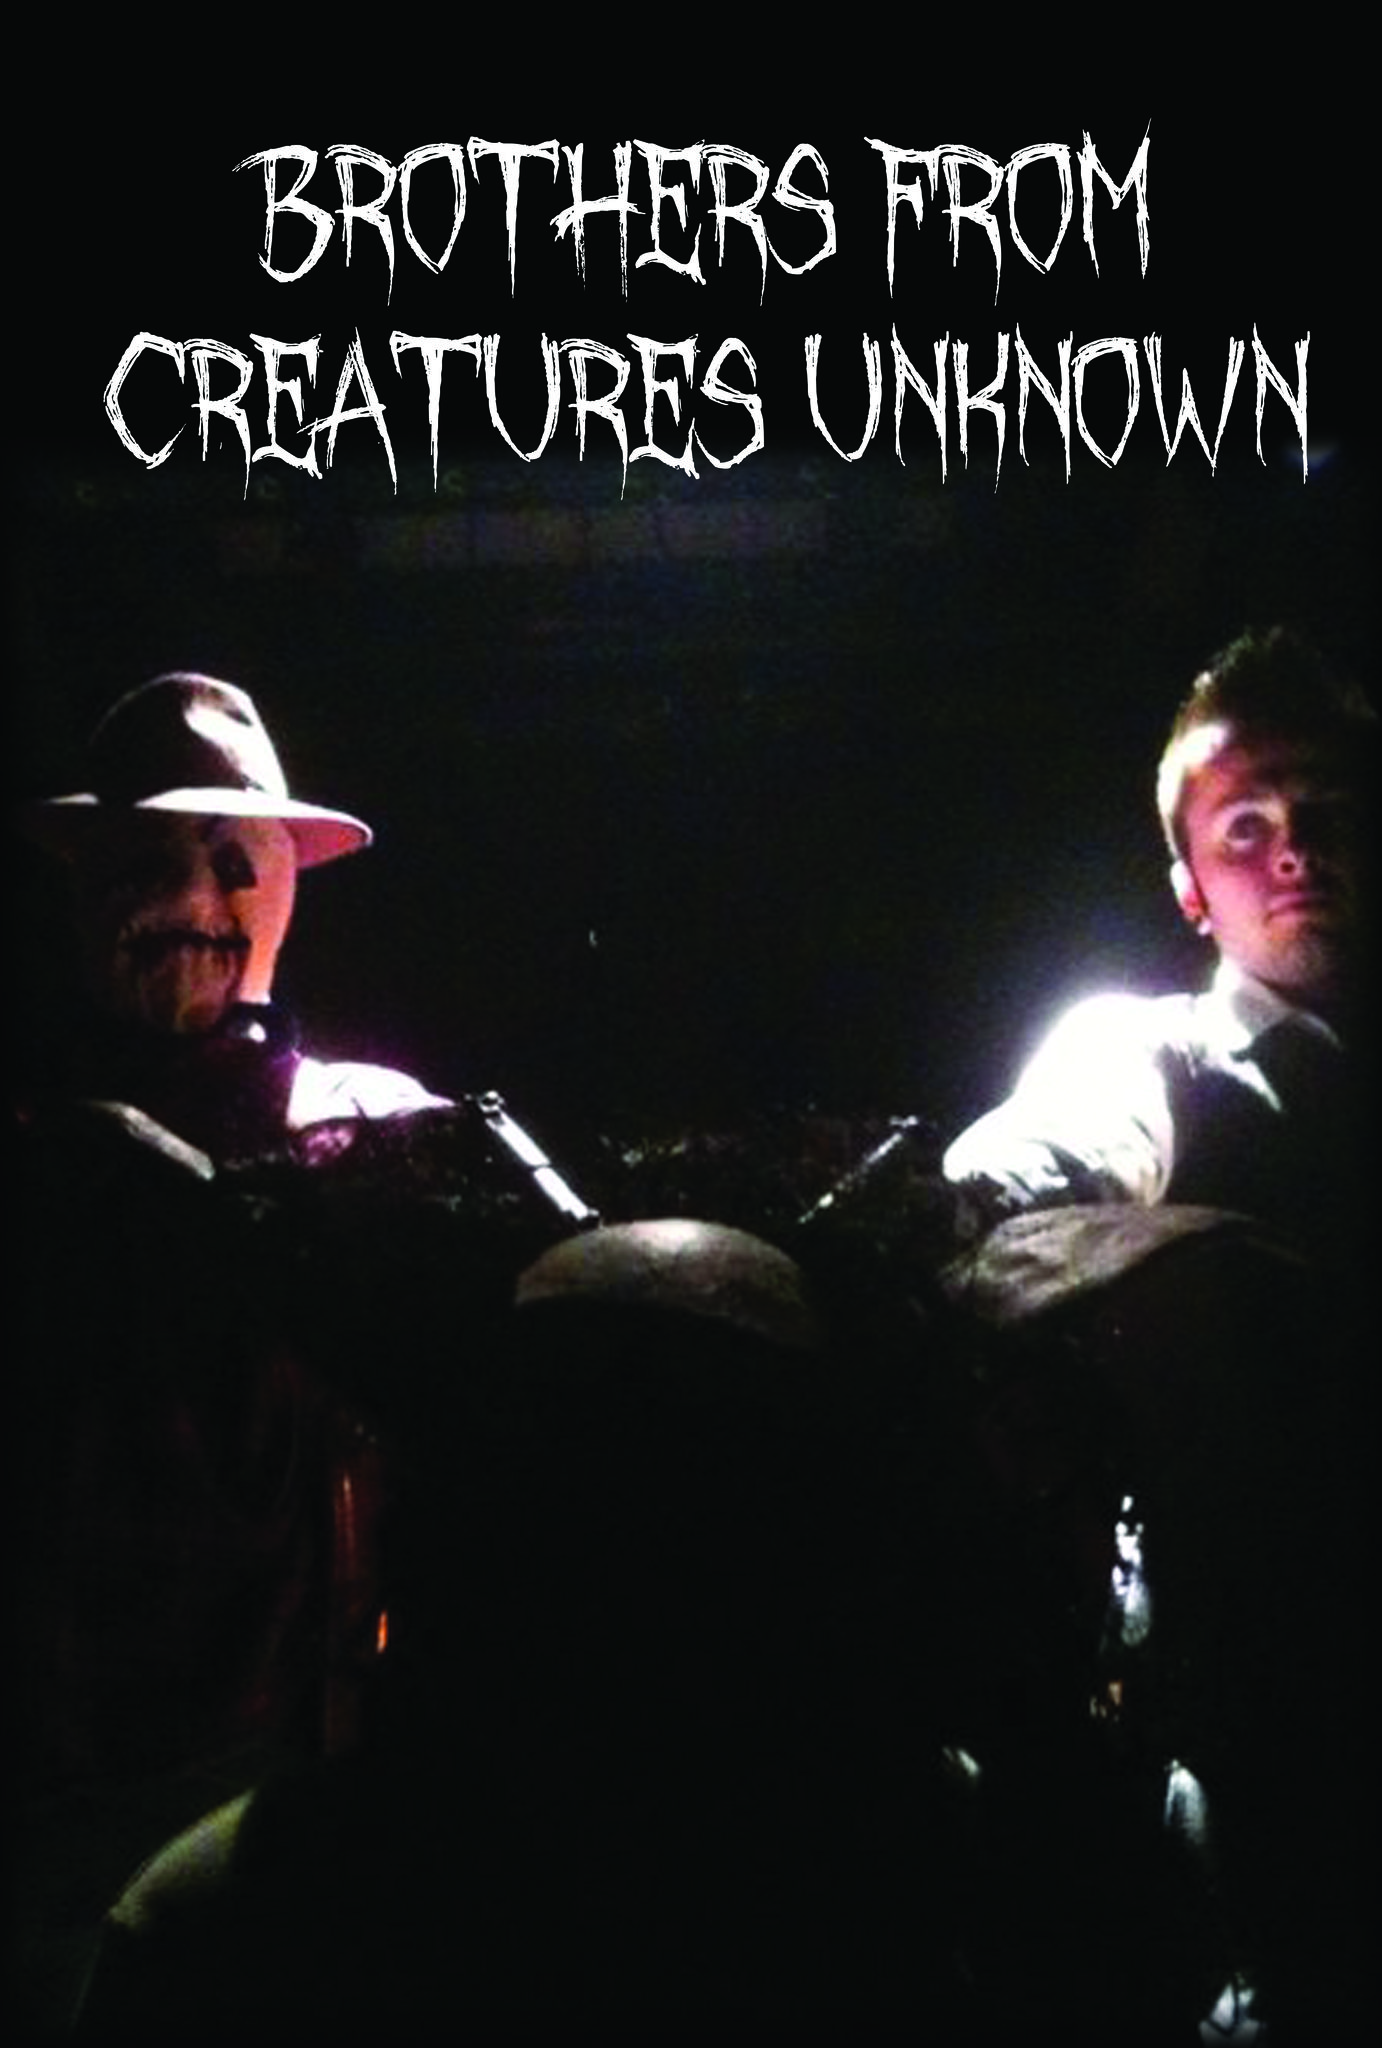 Brothers From Creatures Unknown